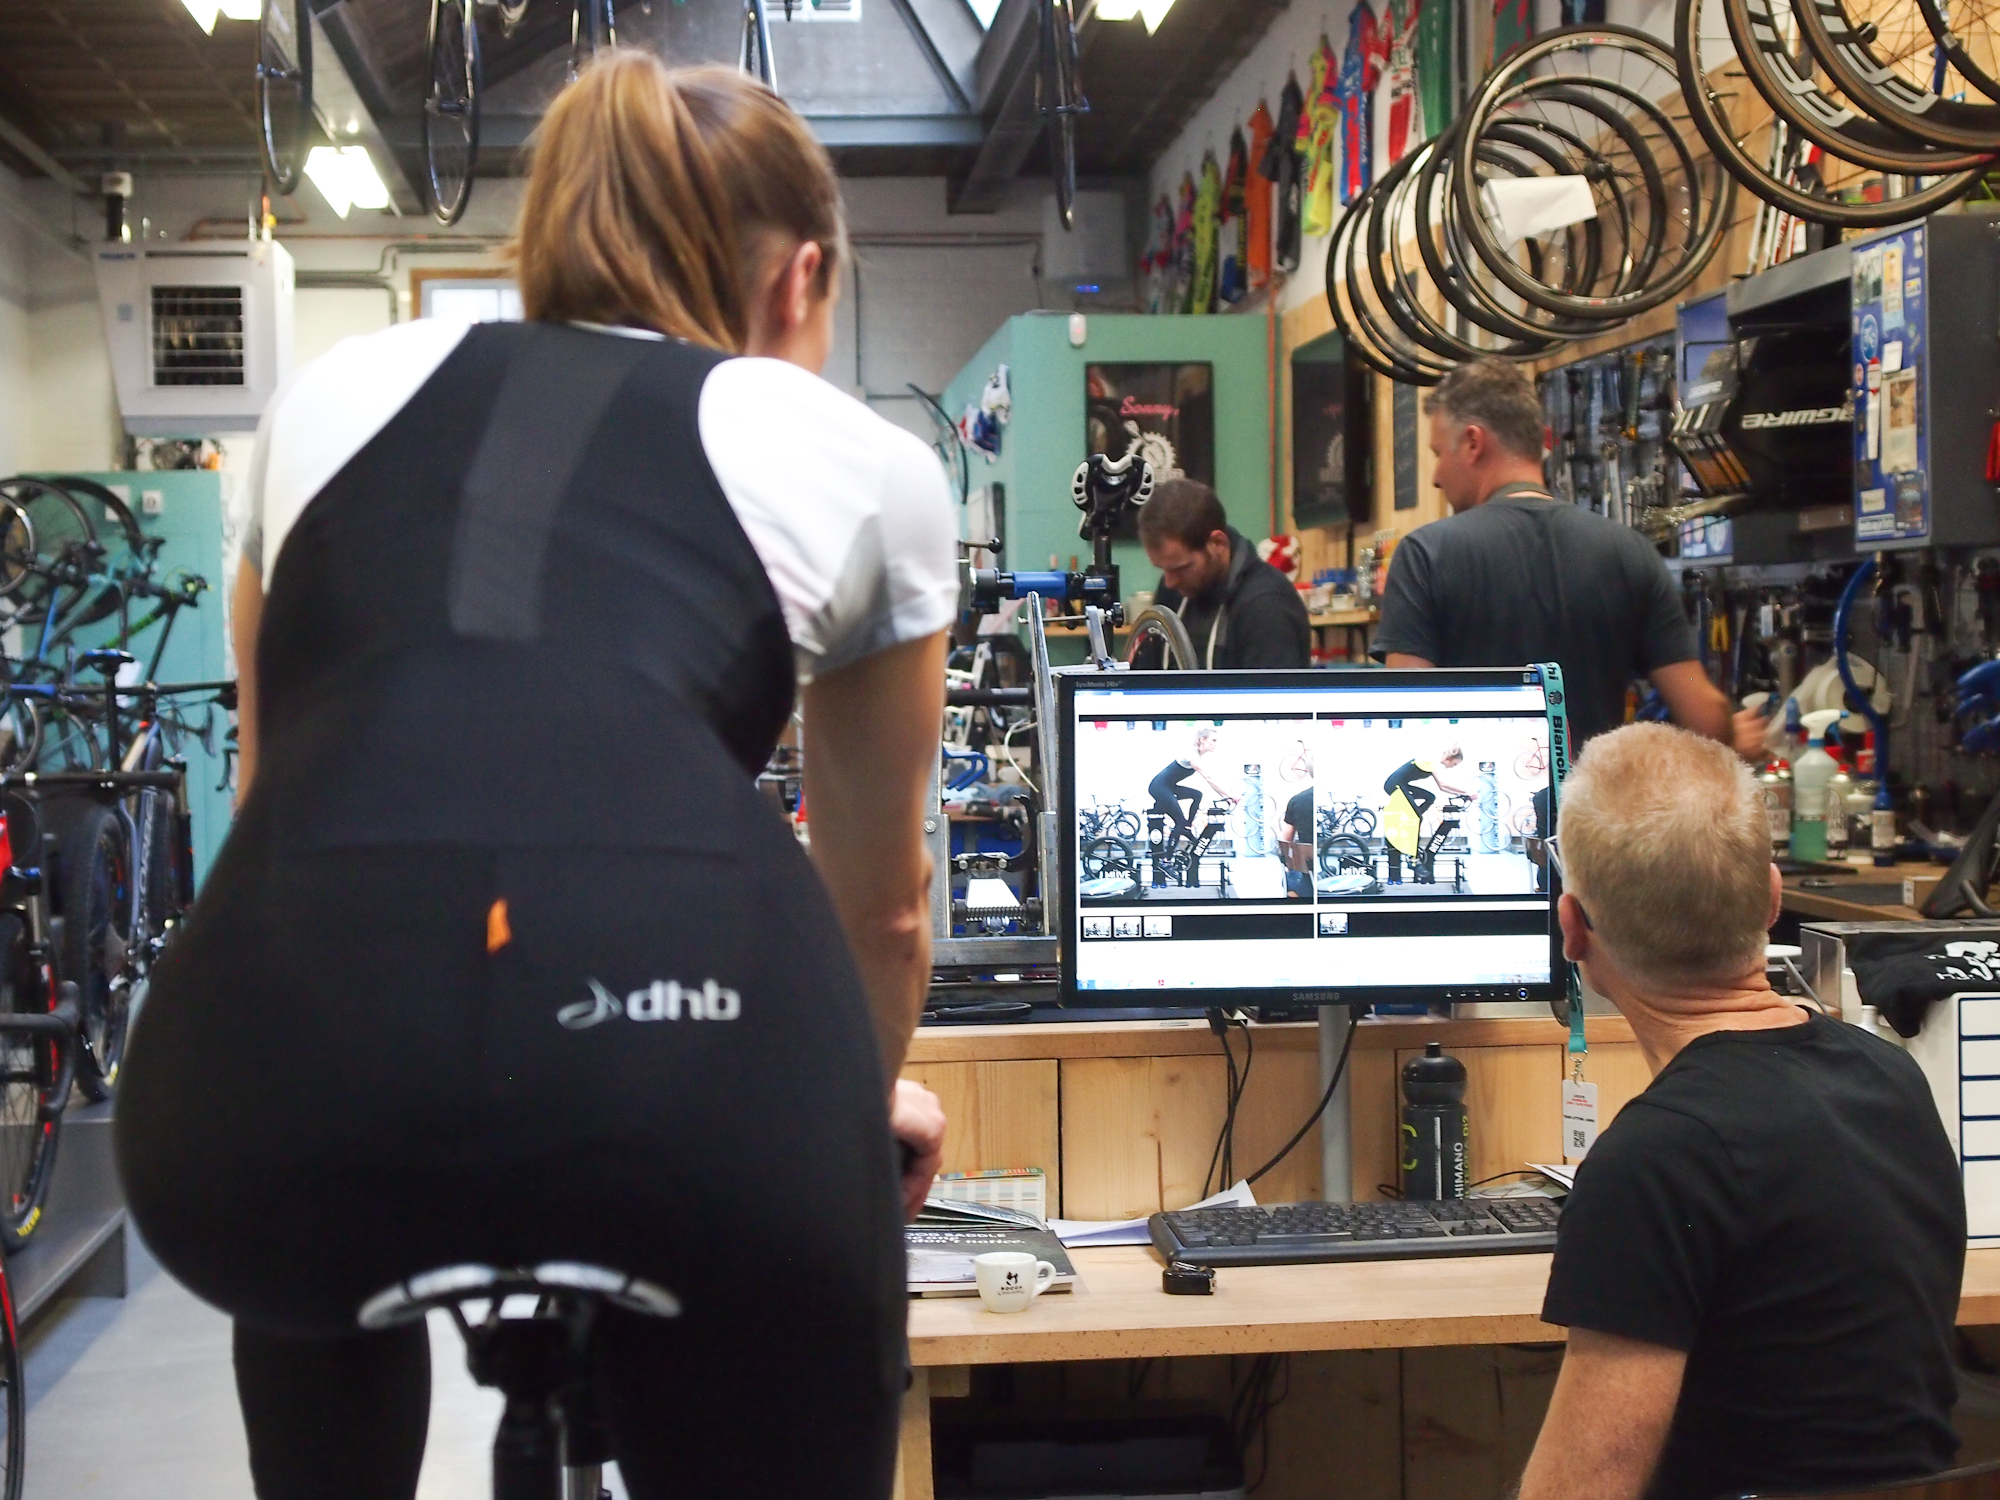 Why everyone should get a professional bike fitting